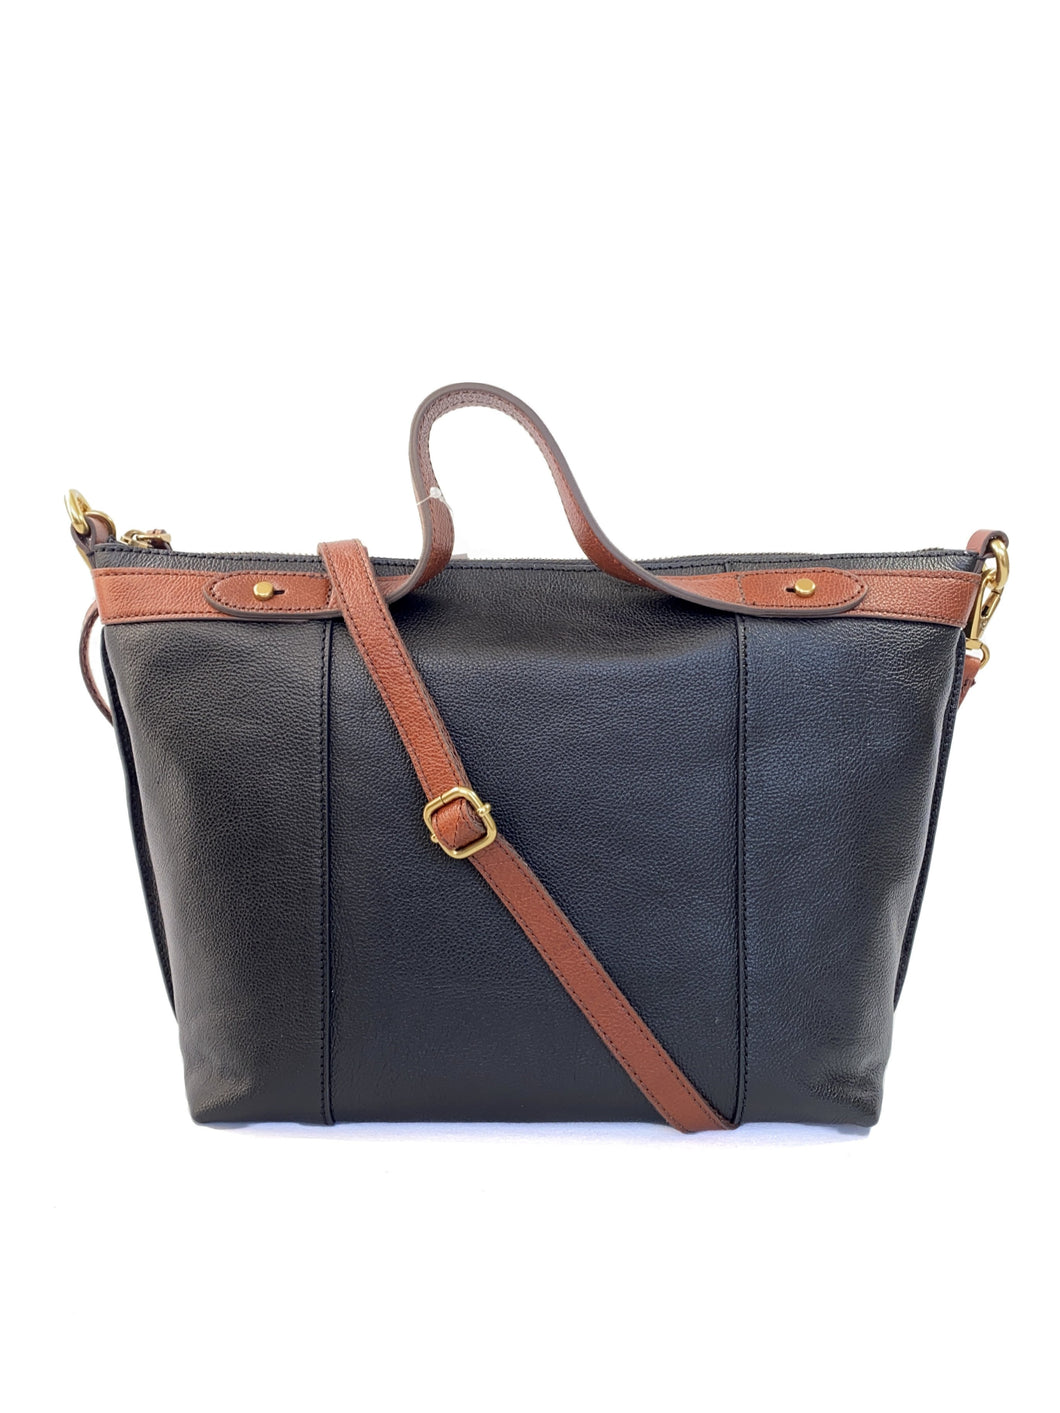 Fossil black and brown leather bag NEW - My Girlfriend's Wardrobe LLC